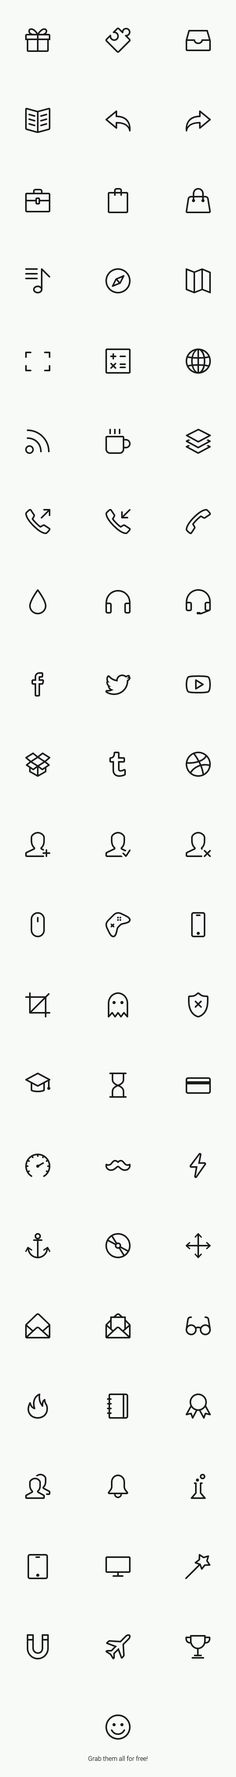 Simple Line Icons (Free PSD, Webfont) by GraphicBurger